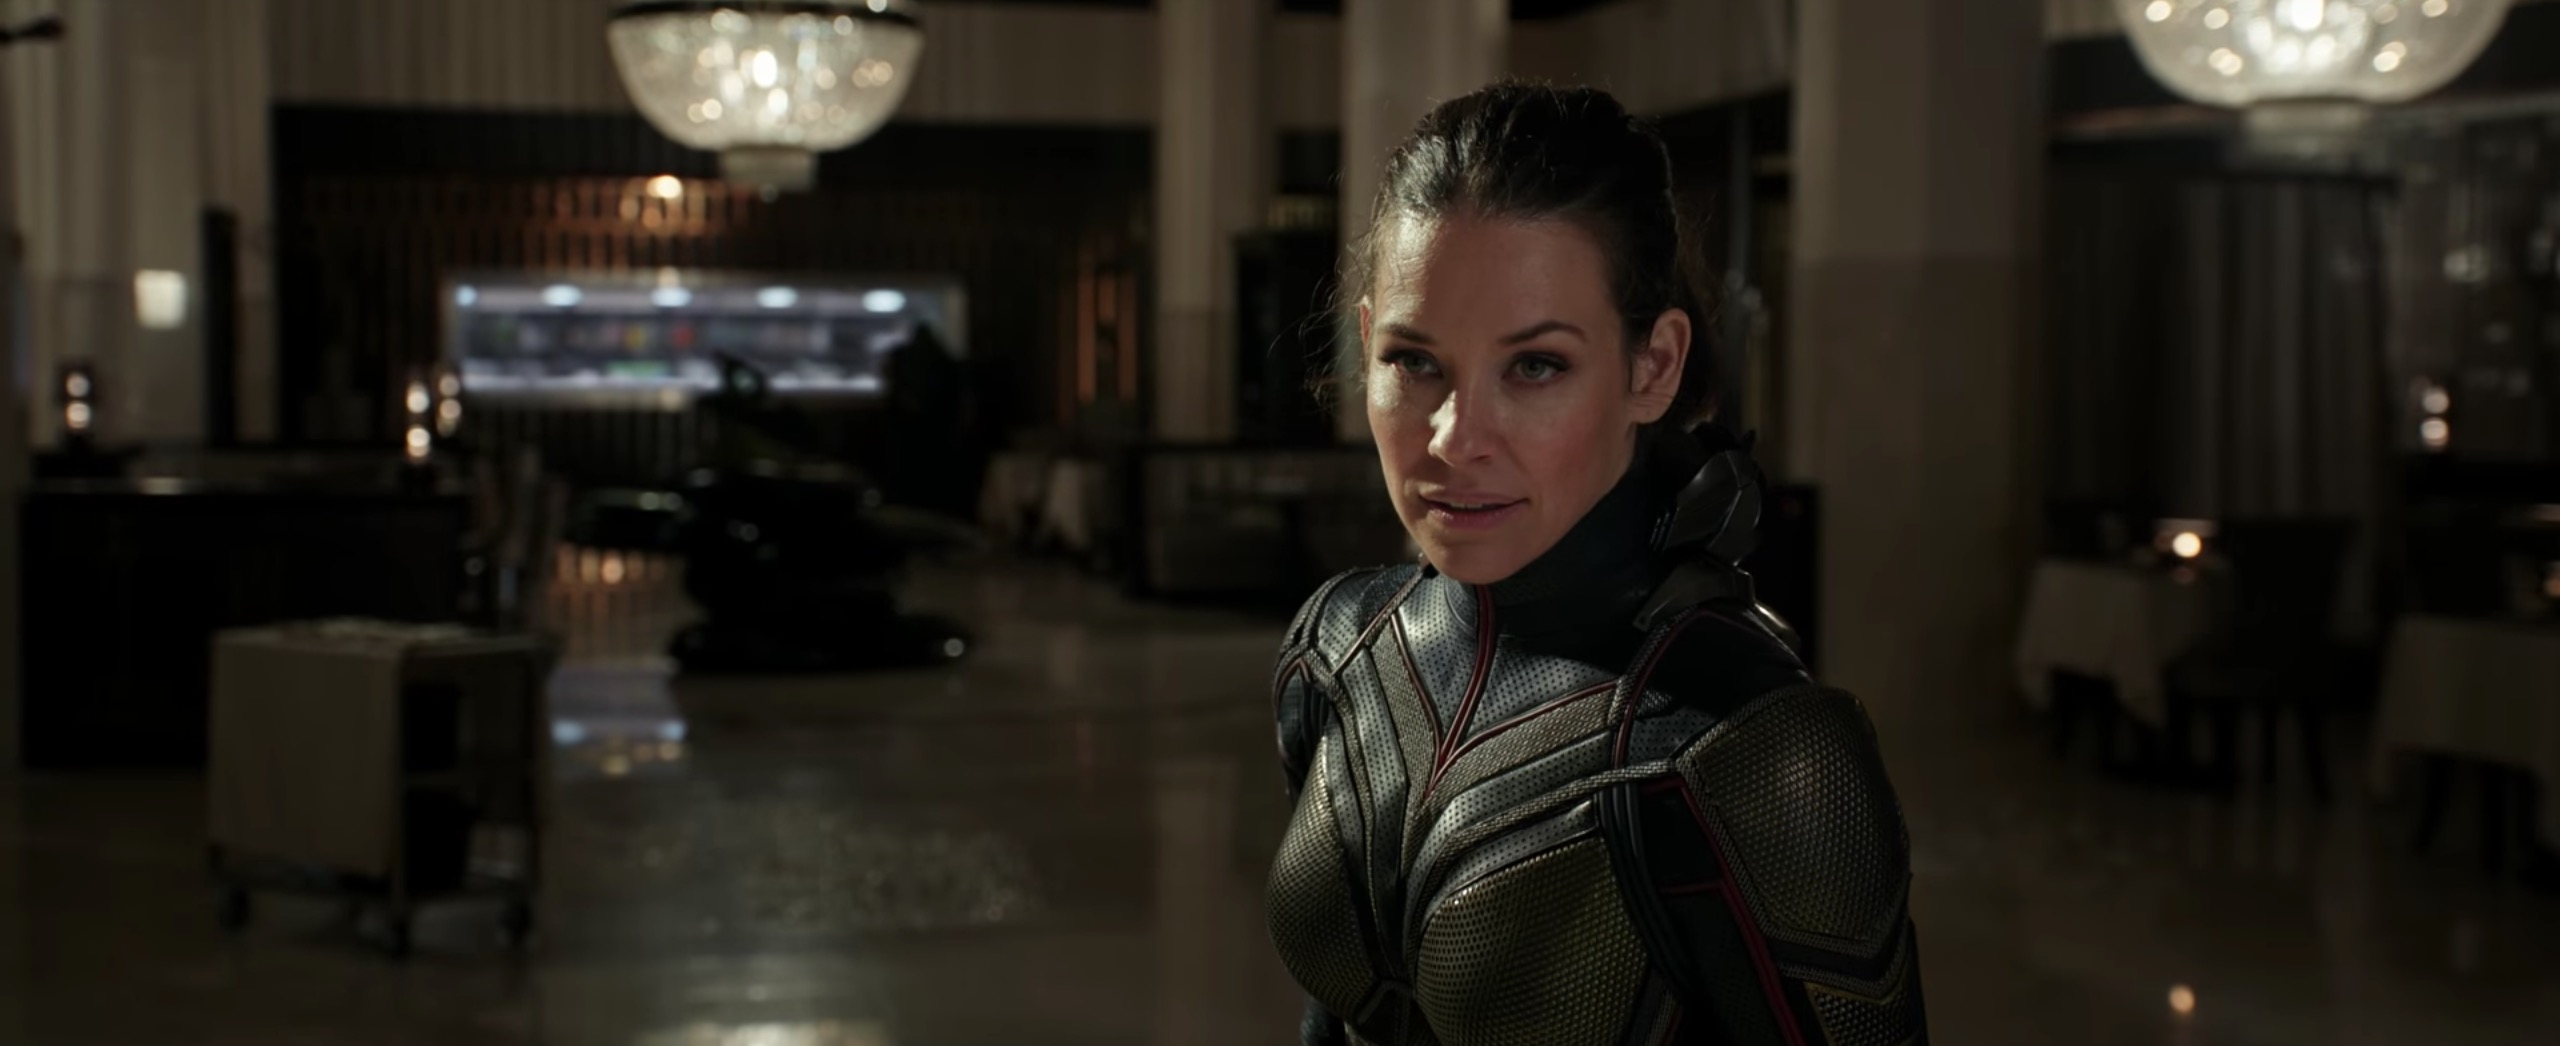 Everyone's on the run in first trailer for 'Ant-Man and the Wasp'